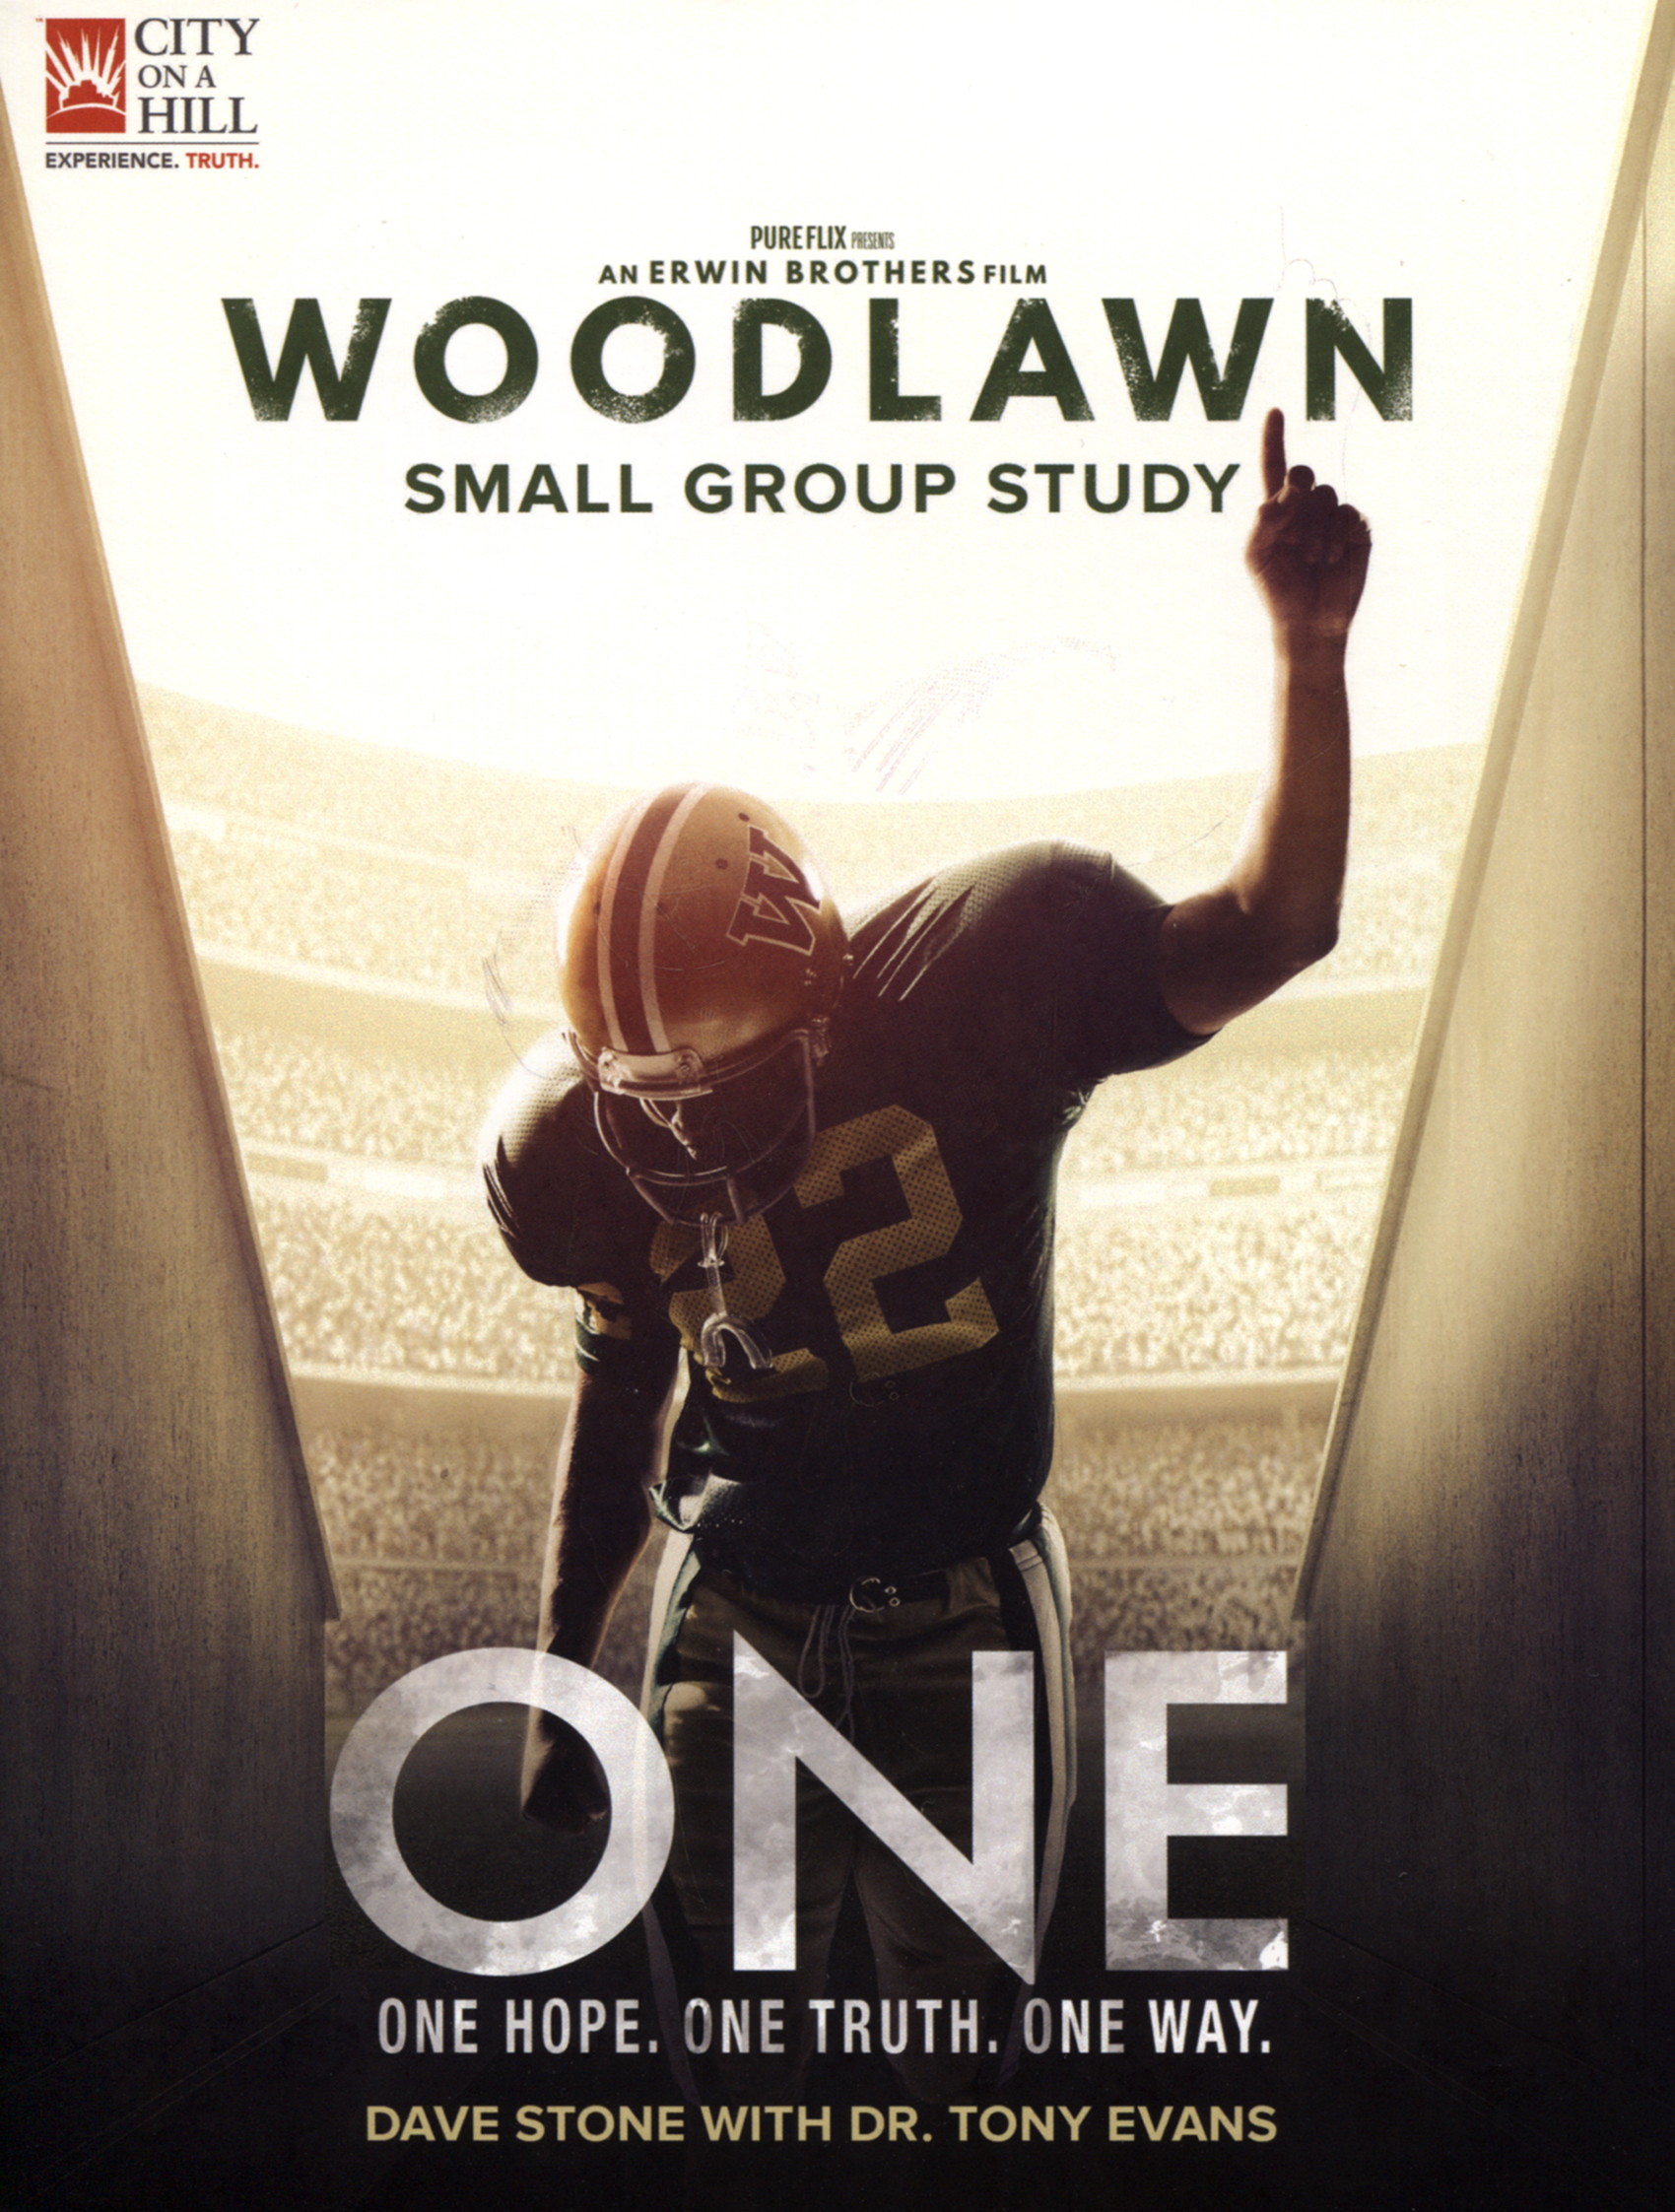 One: The Woodlawn Small Group Study